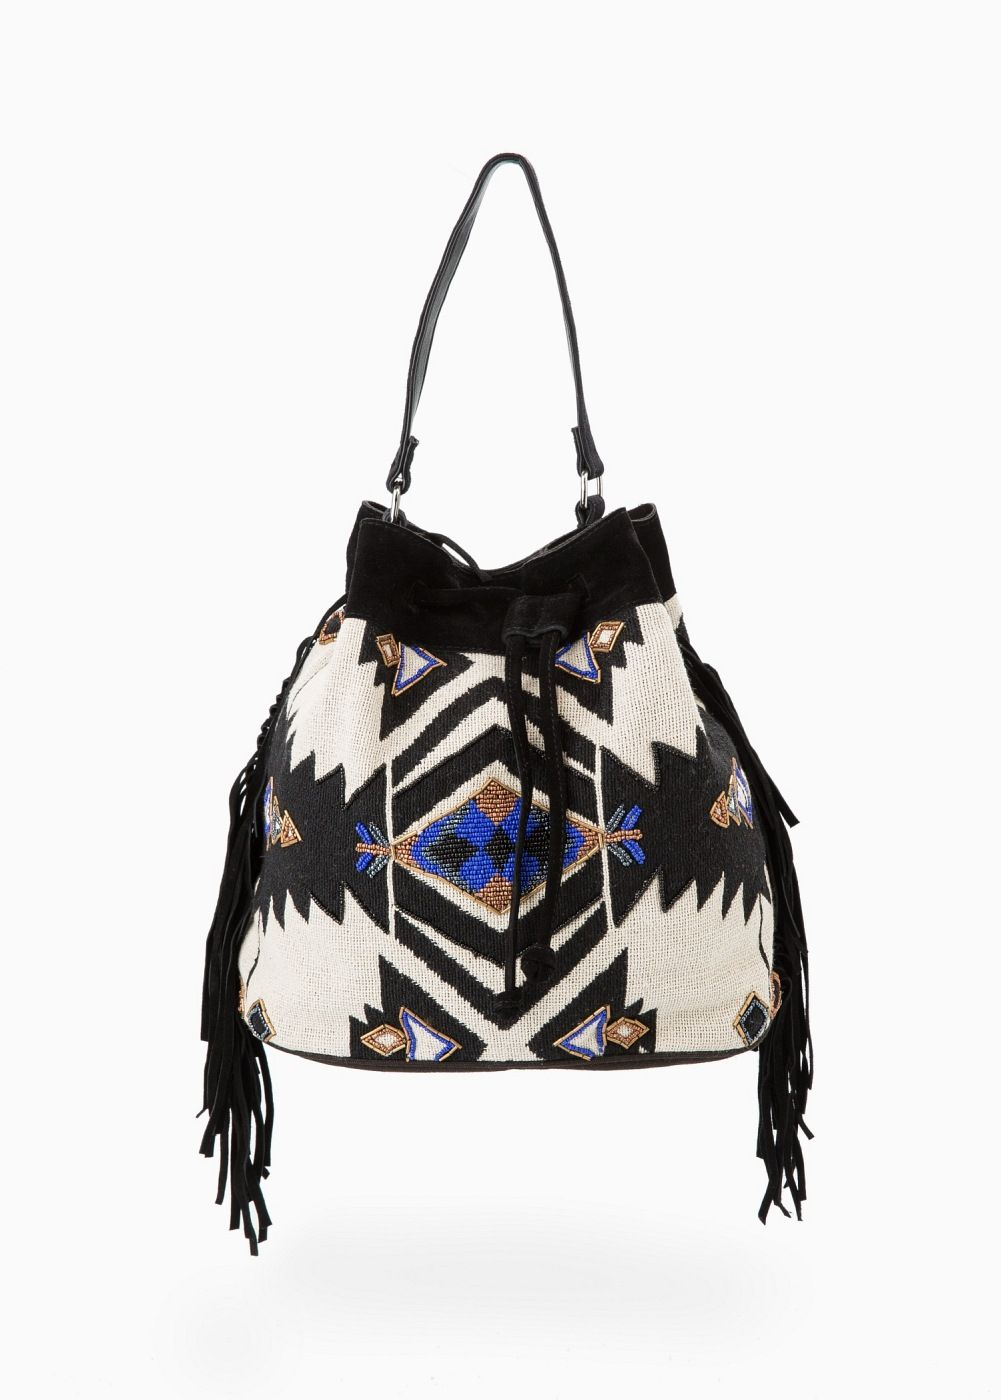 f3a062a6bacc Ethnic bucket bag - Women